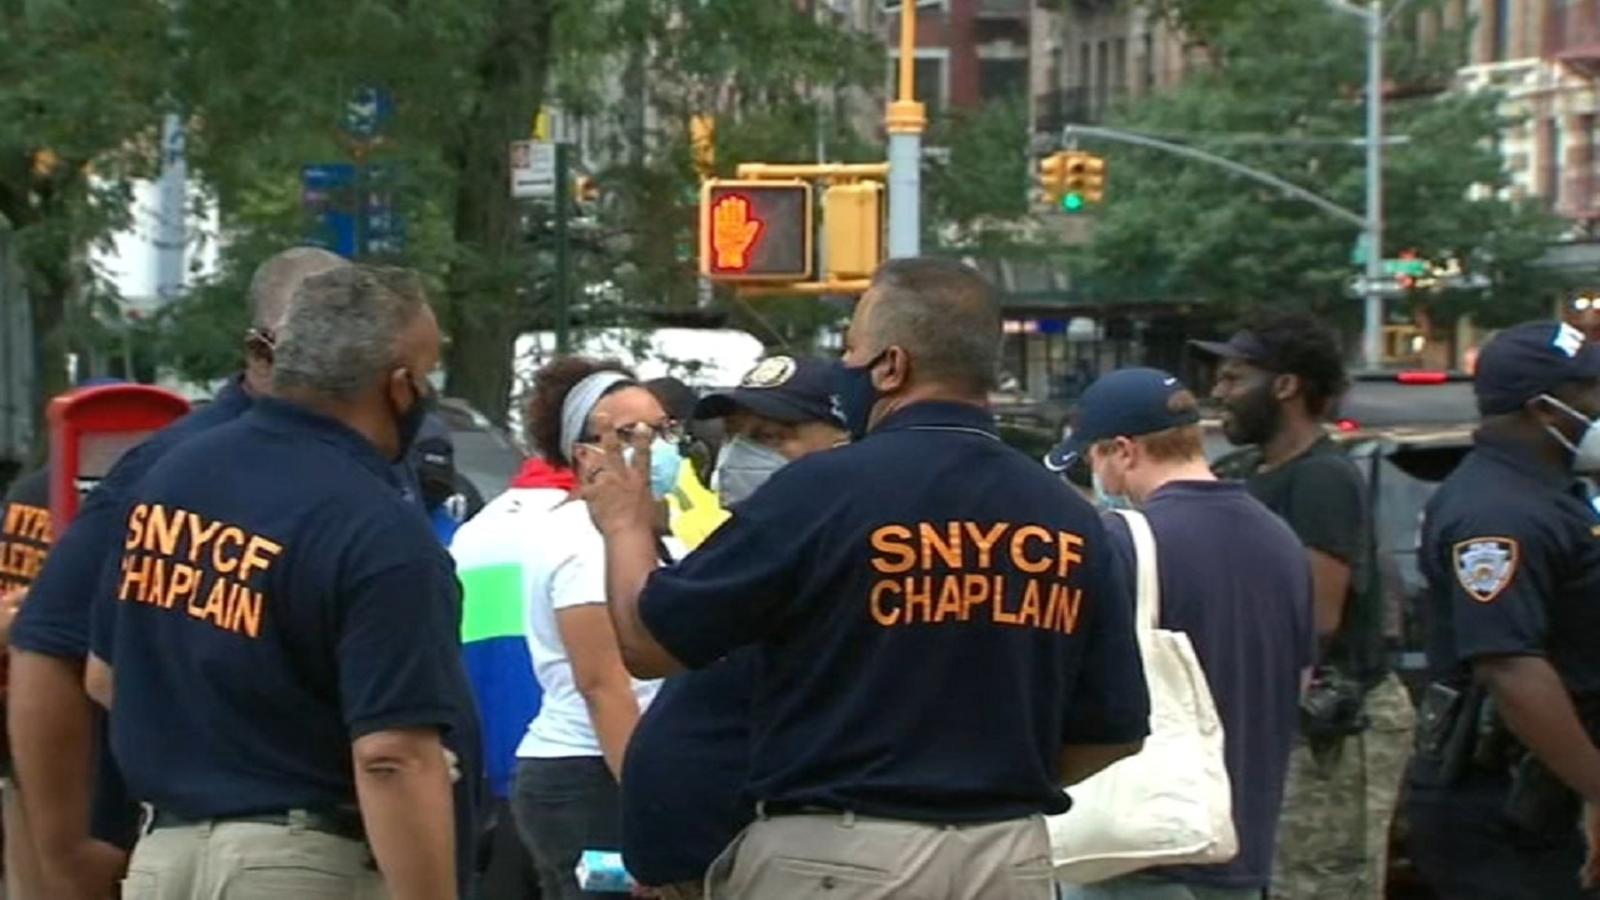 Harlem residents occupy intersection plagued by shootings